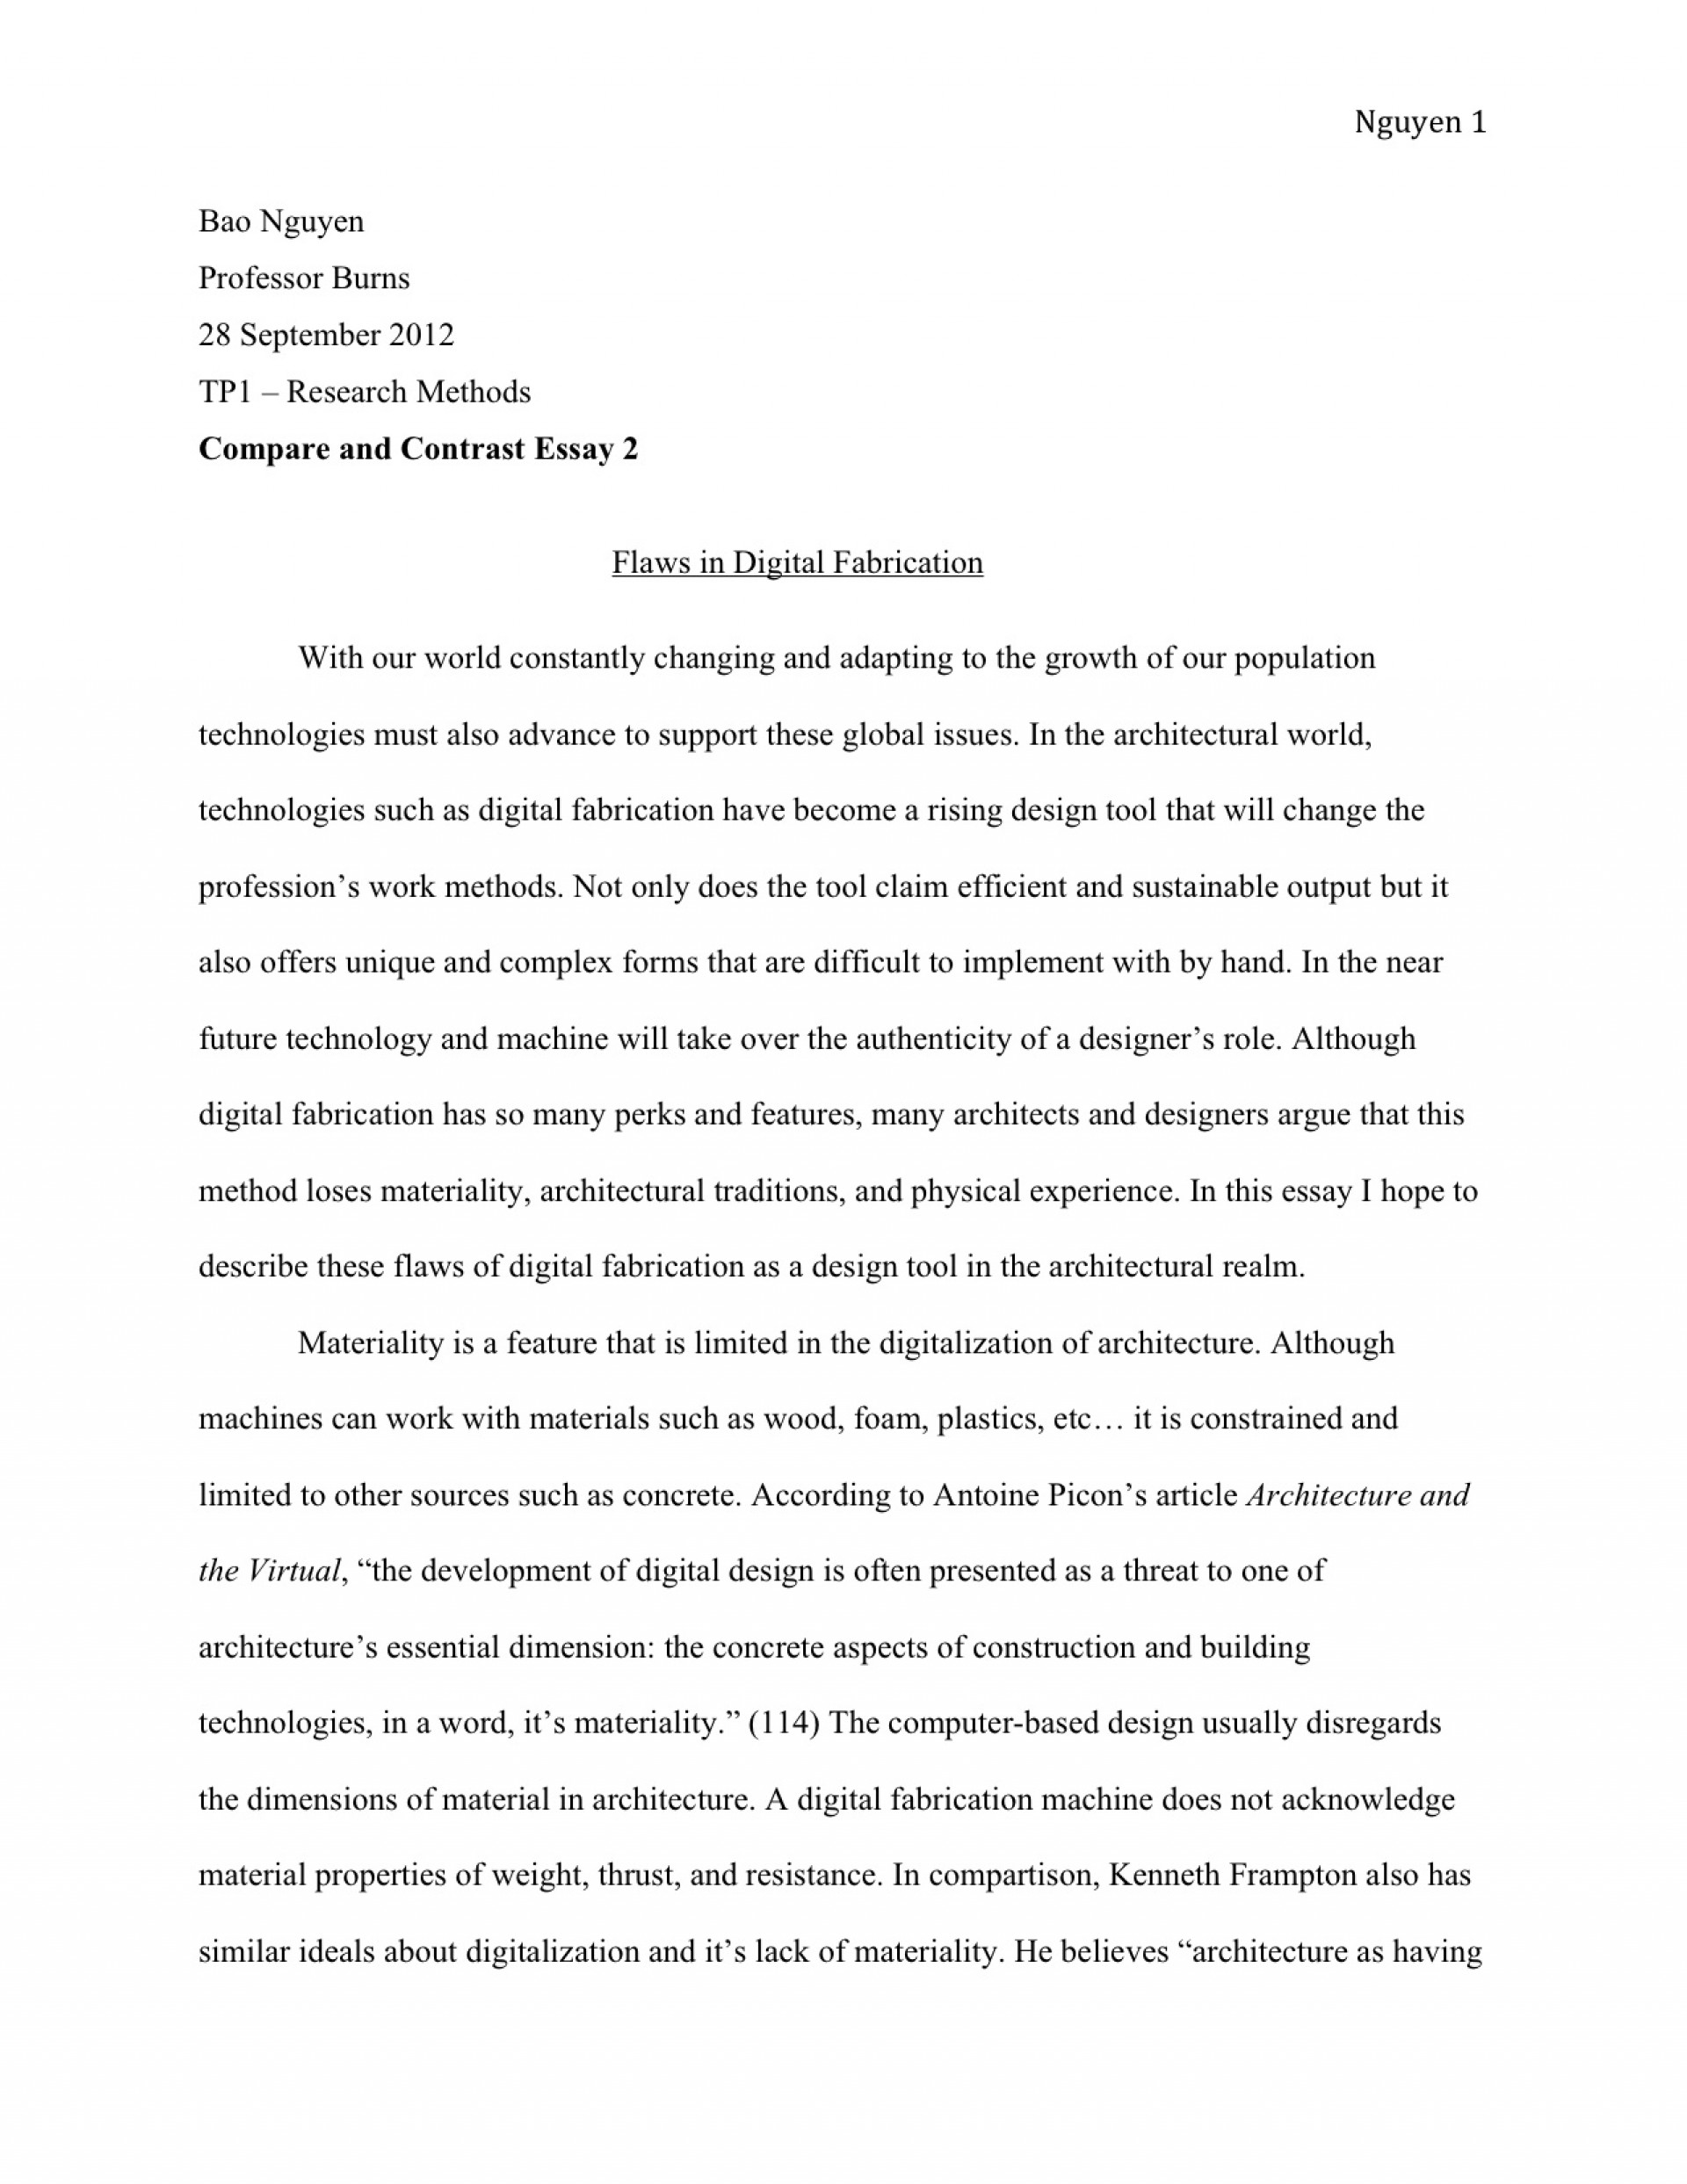 007 How Do You Write An Essay Example Tp1 3 Unbelievable A Good Outline To Introduction Paragraph Argumentative In Third Person 1920